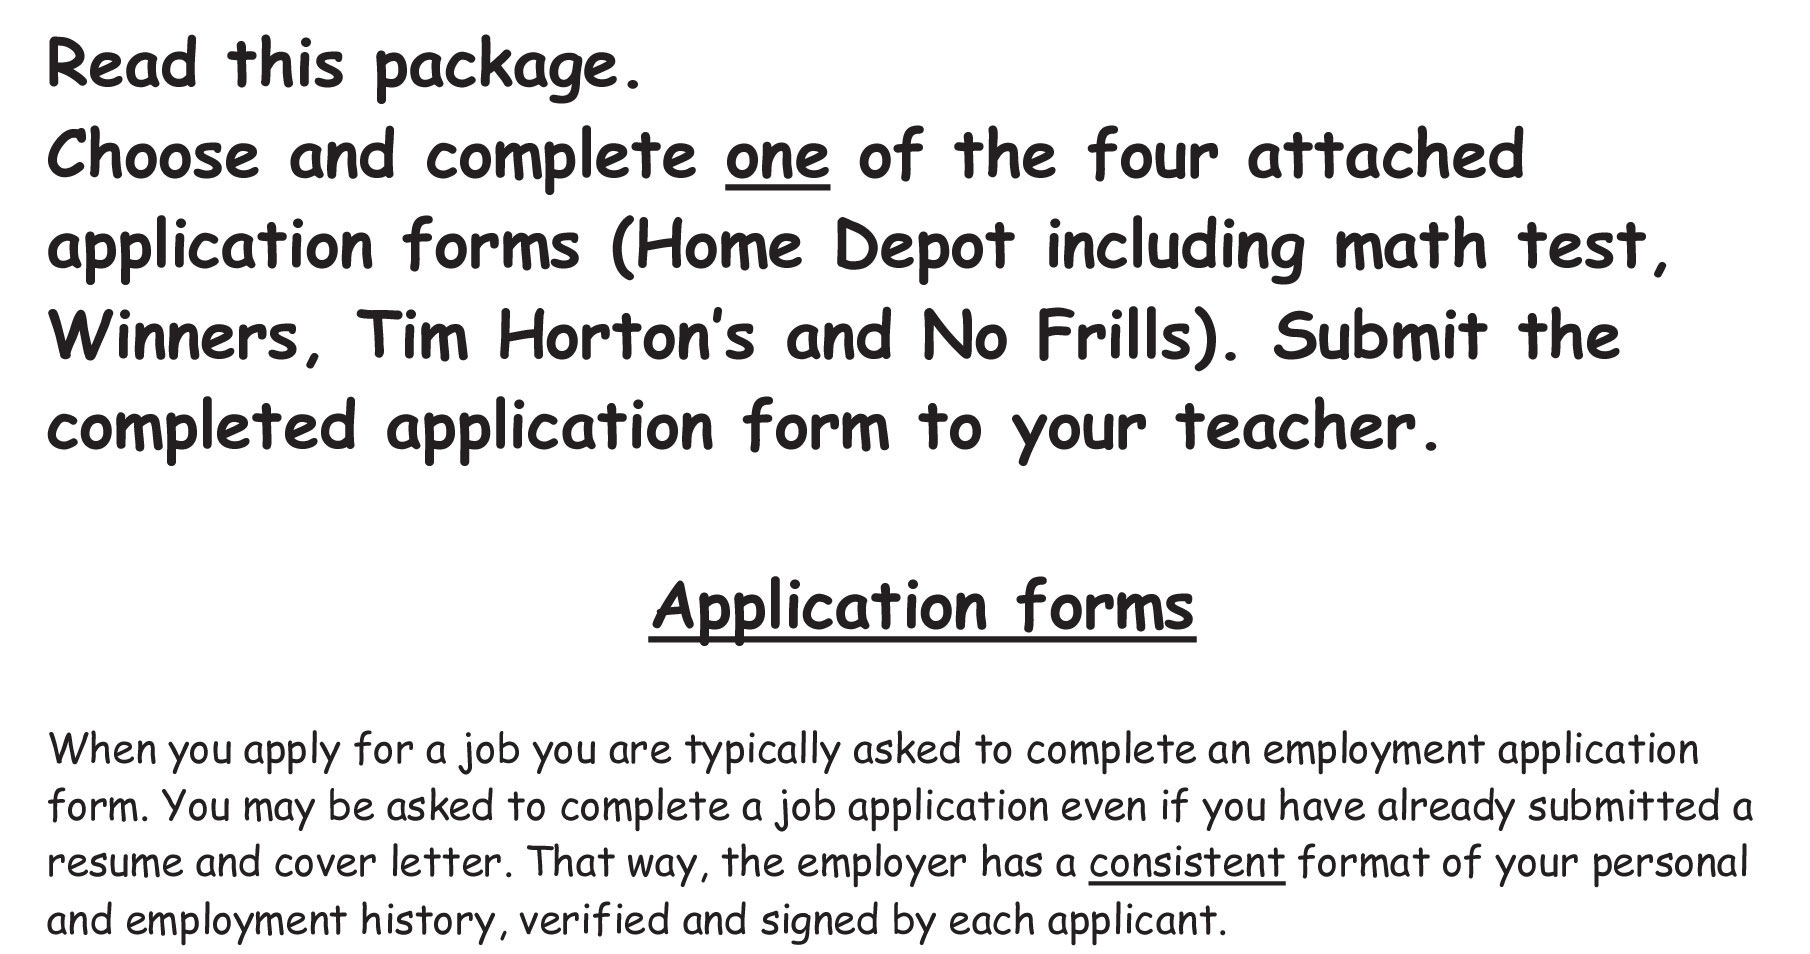 subway job application form professional resume cover subway job application form yourwalmartcareerca walmart job application job application online pictures to pin